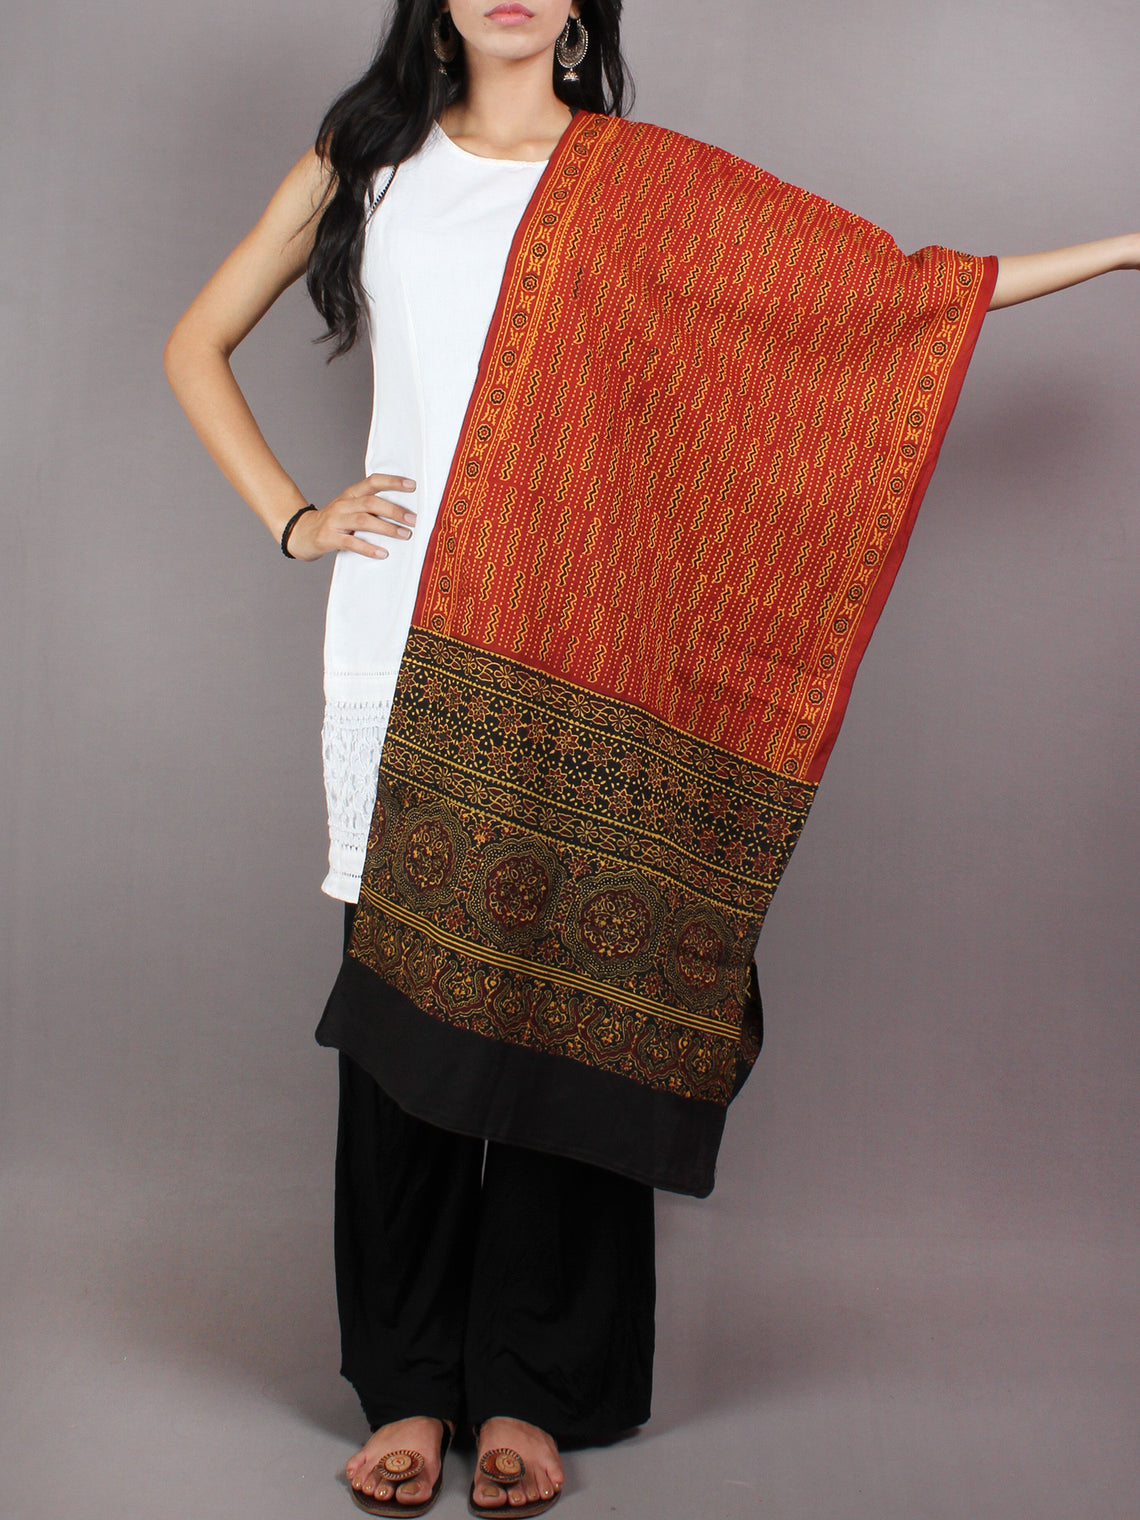 Red Black Yellow Mughal Nakashi Ajrakh Hand Block Printed Cotton Stole - S6317055